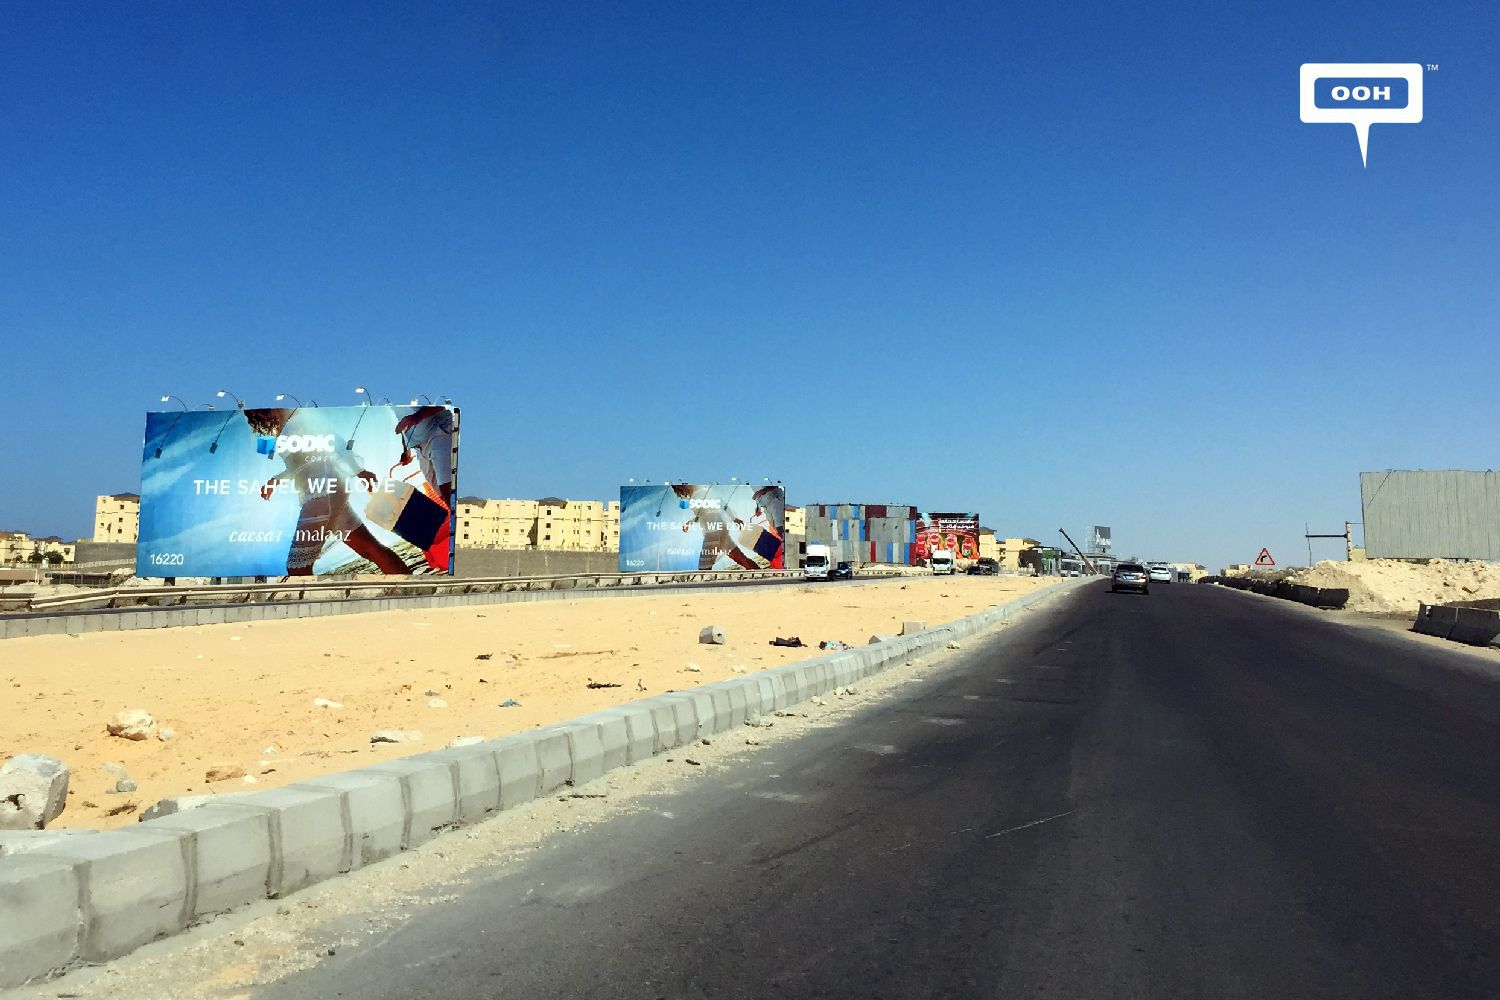 The North Coast billboards freshen our summer with several OOH campaigns-014